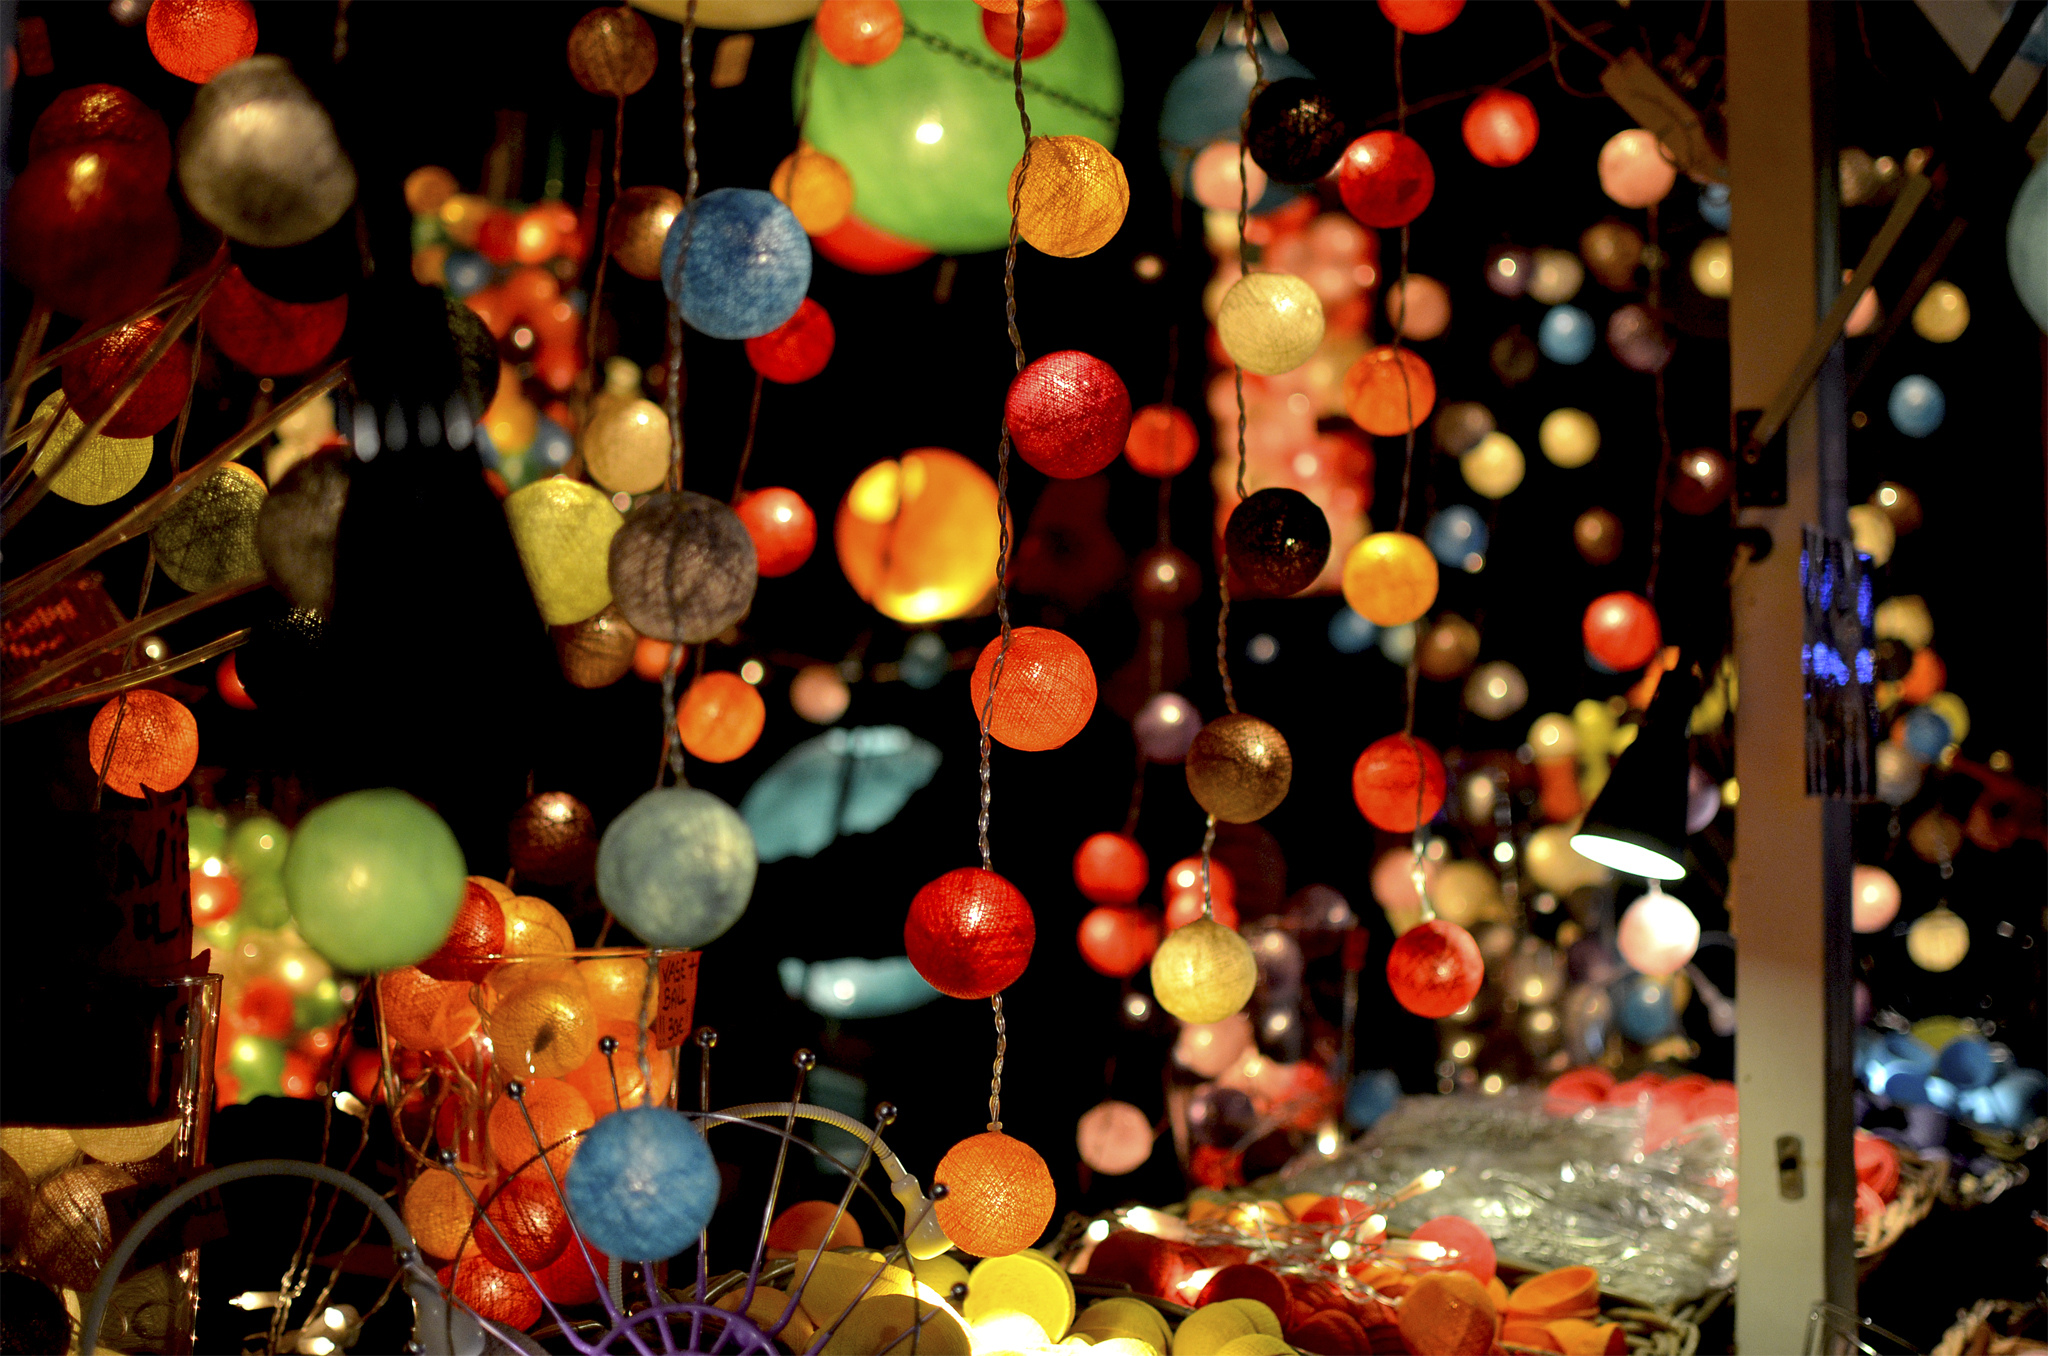 Décorations de Noël - Anne Landois-Favret / Flickr